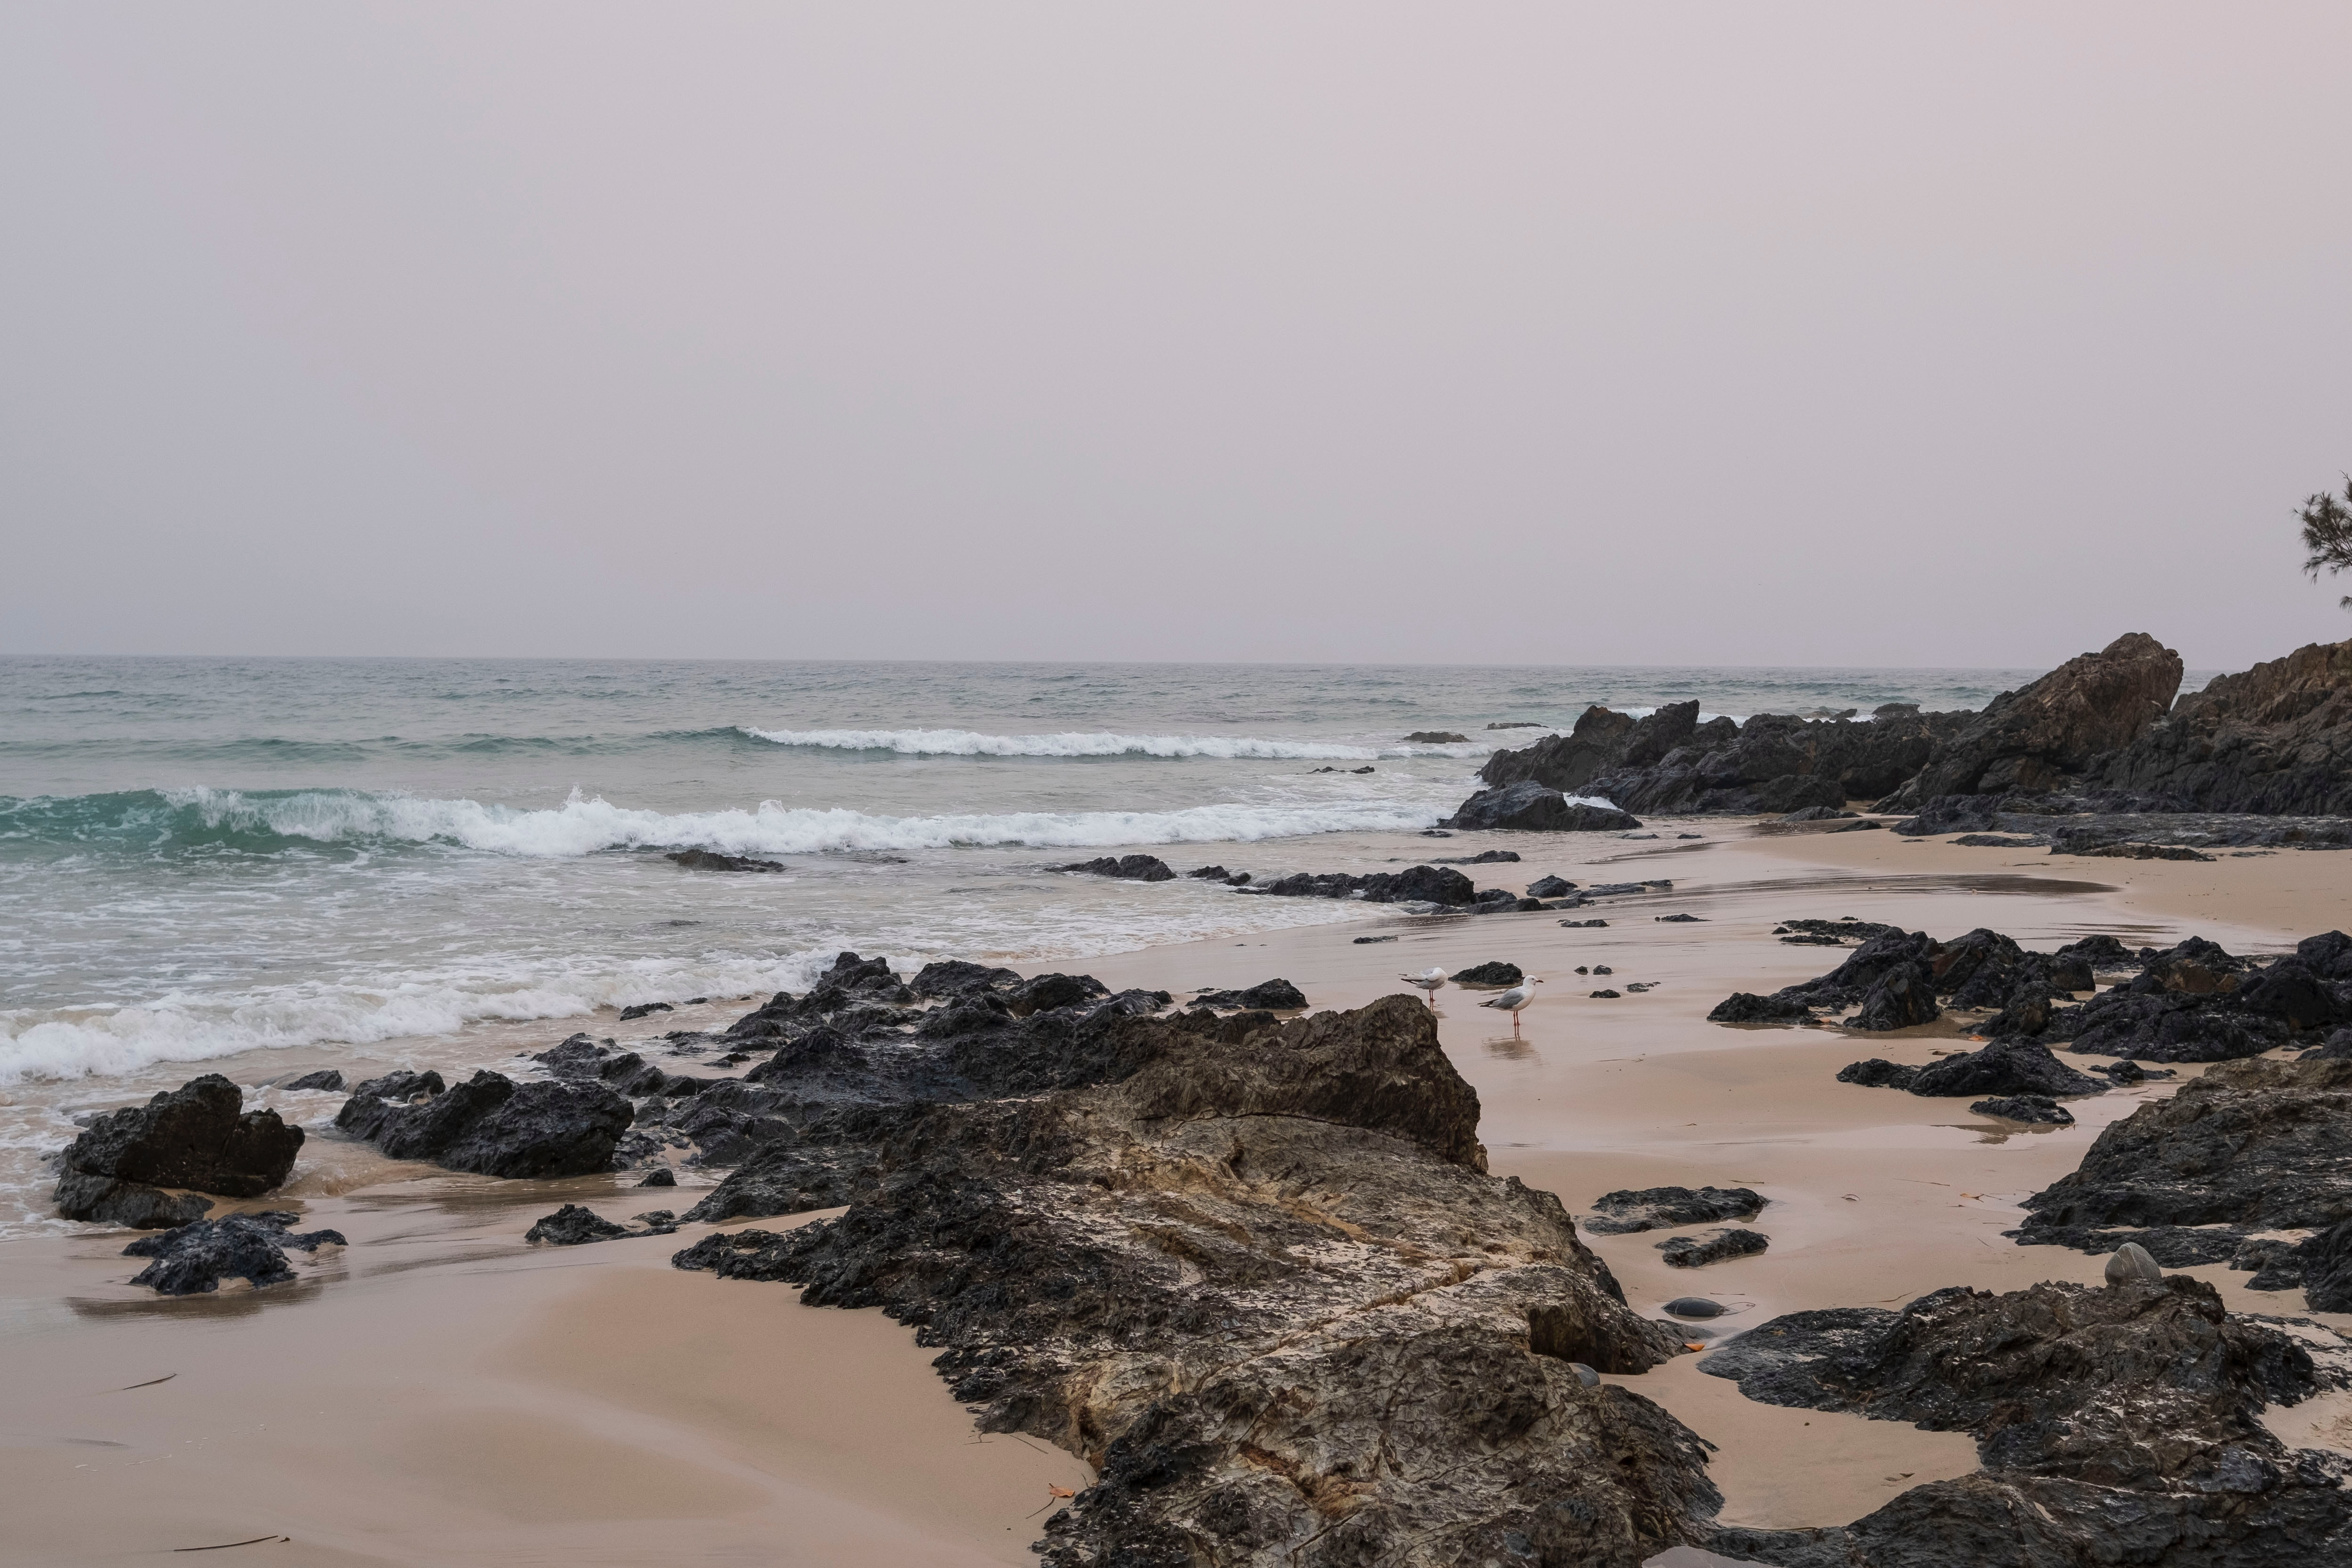 151773 download wallpaper Nature, Birds, Seagulls, Waves, Beach, Rocks screensavers and pictures for free